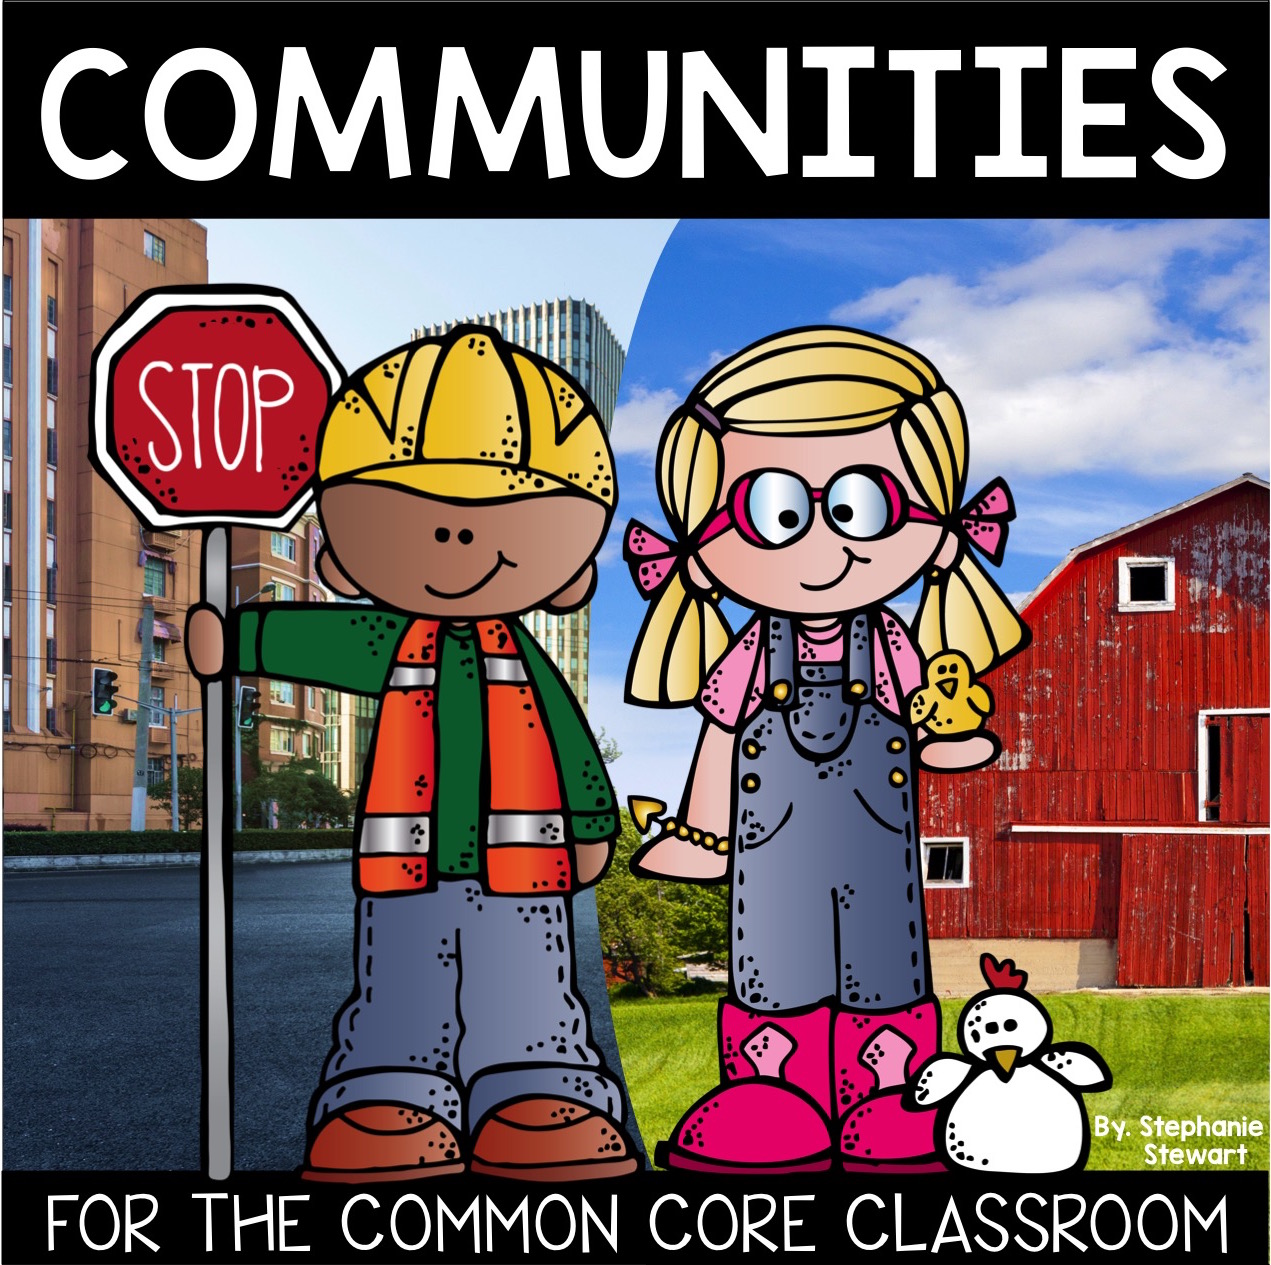 All About Communitities